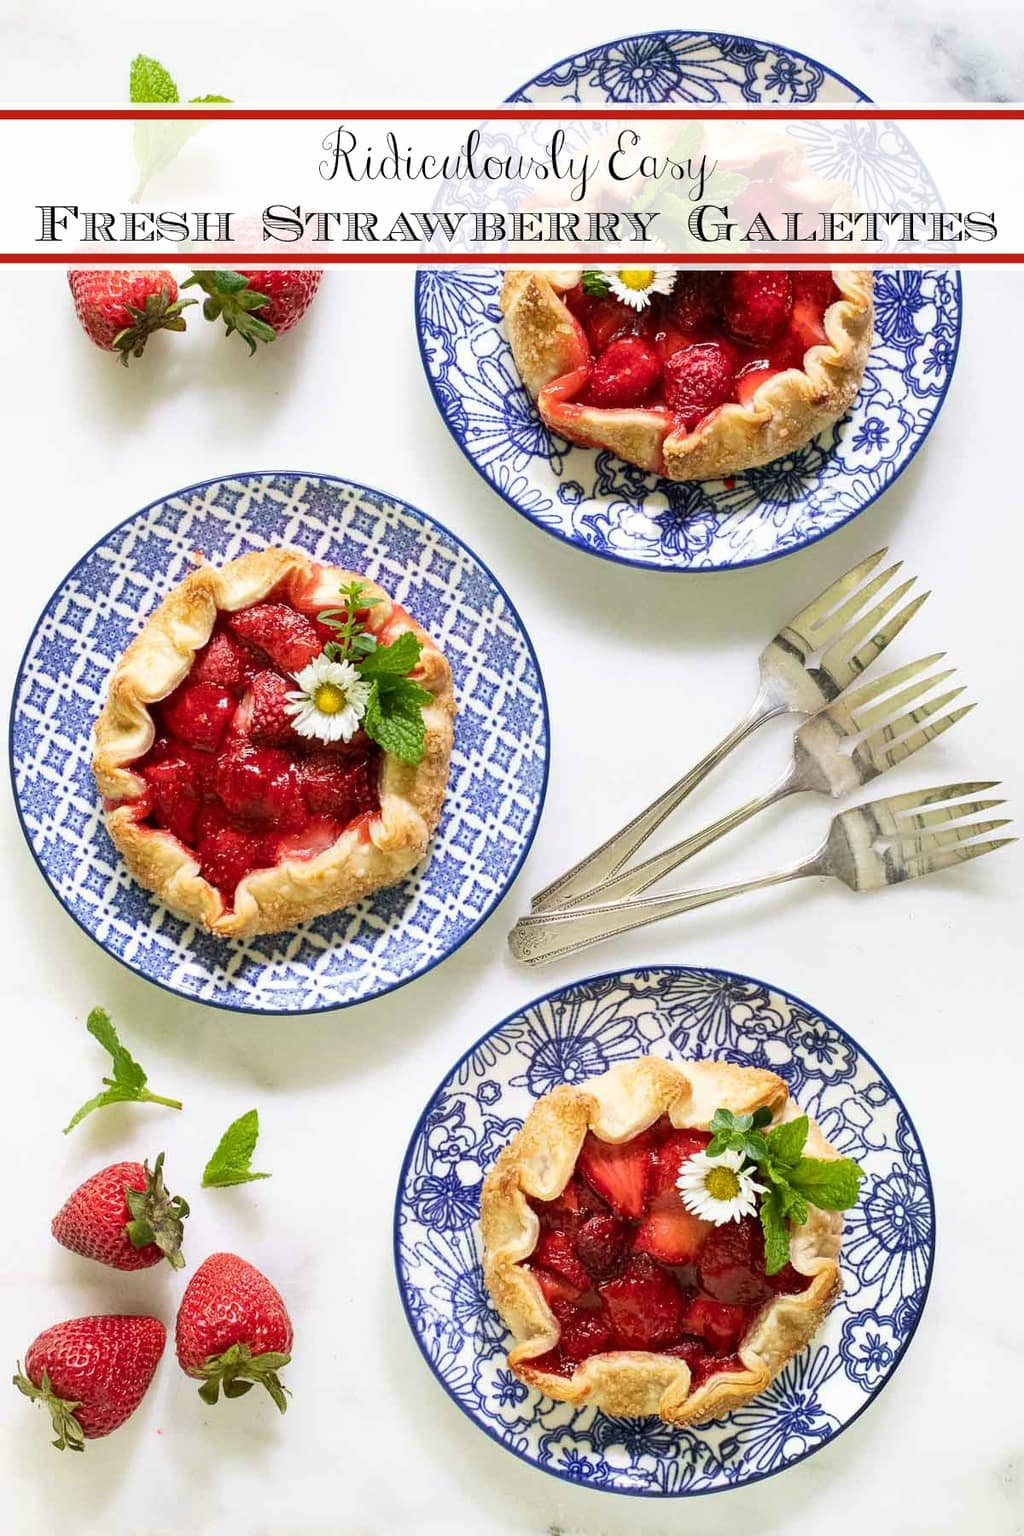 Ridiculously Easy Fresh Strawberry Galettes